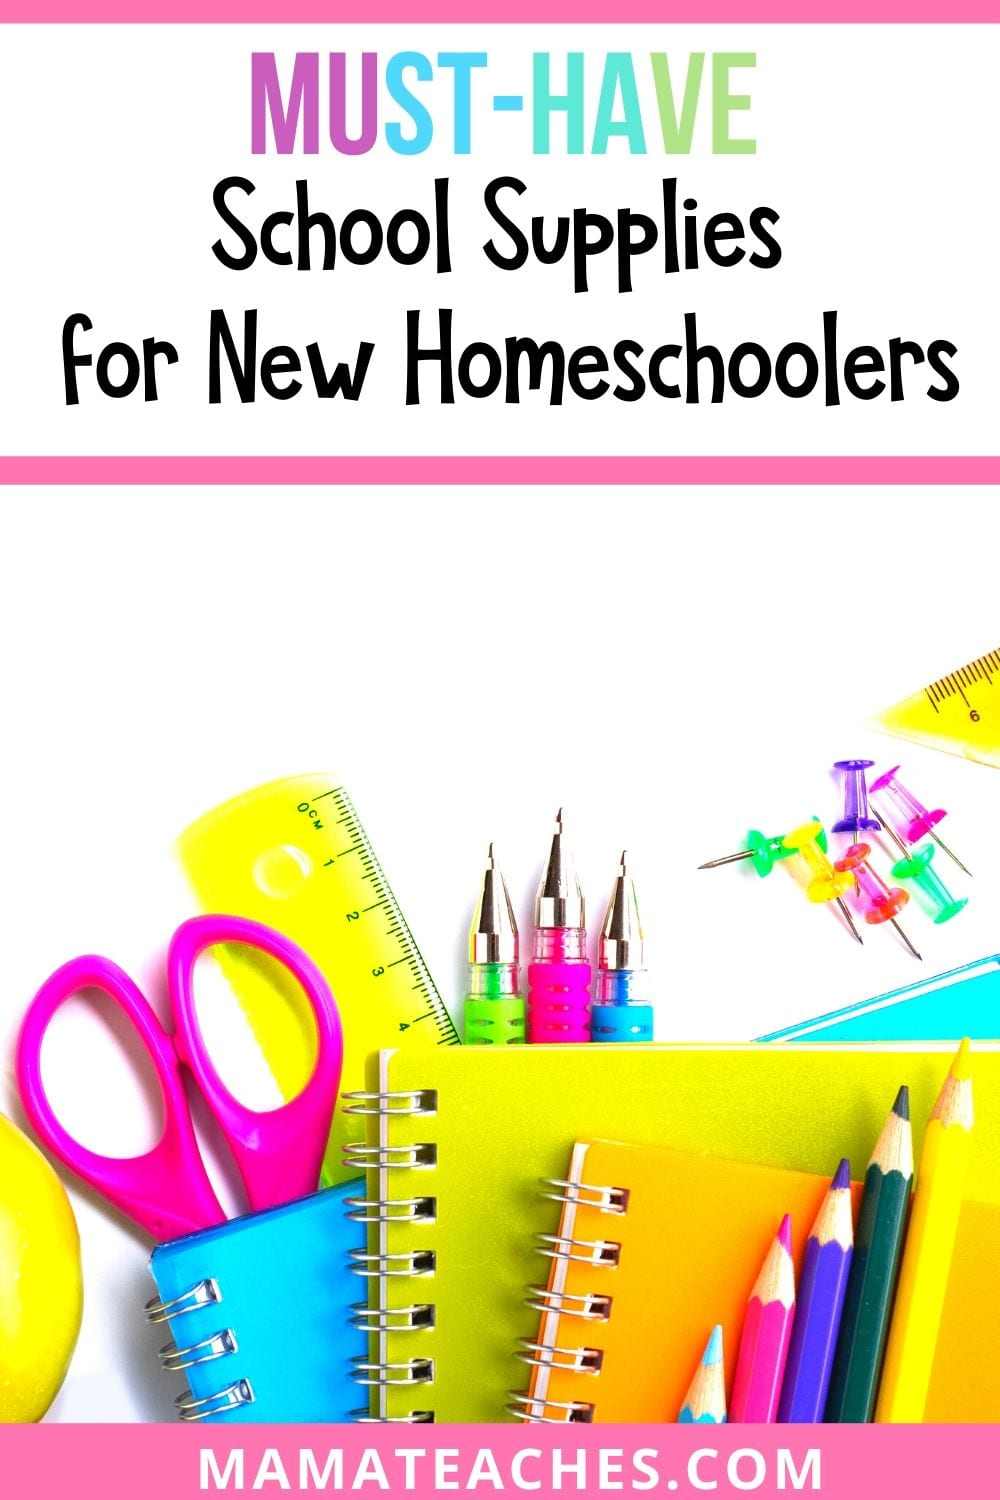 Must-Have School Supplies for New Homeschoolers